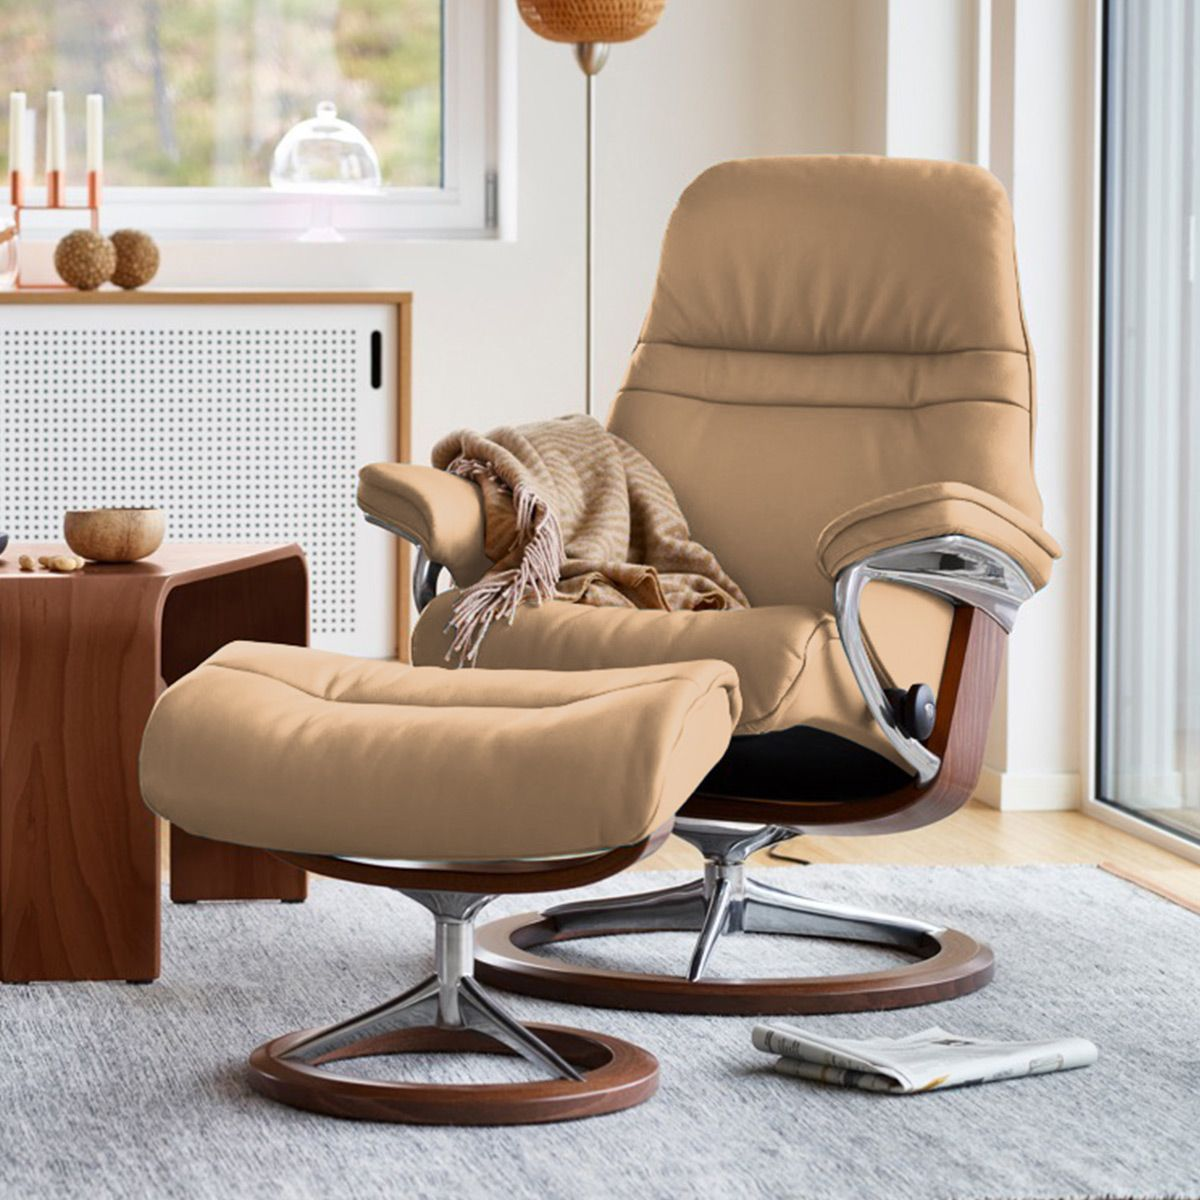 10 Most Popular Reclining Chair Living Room